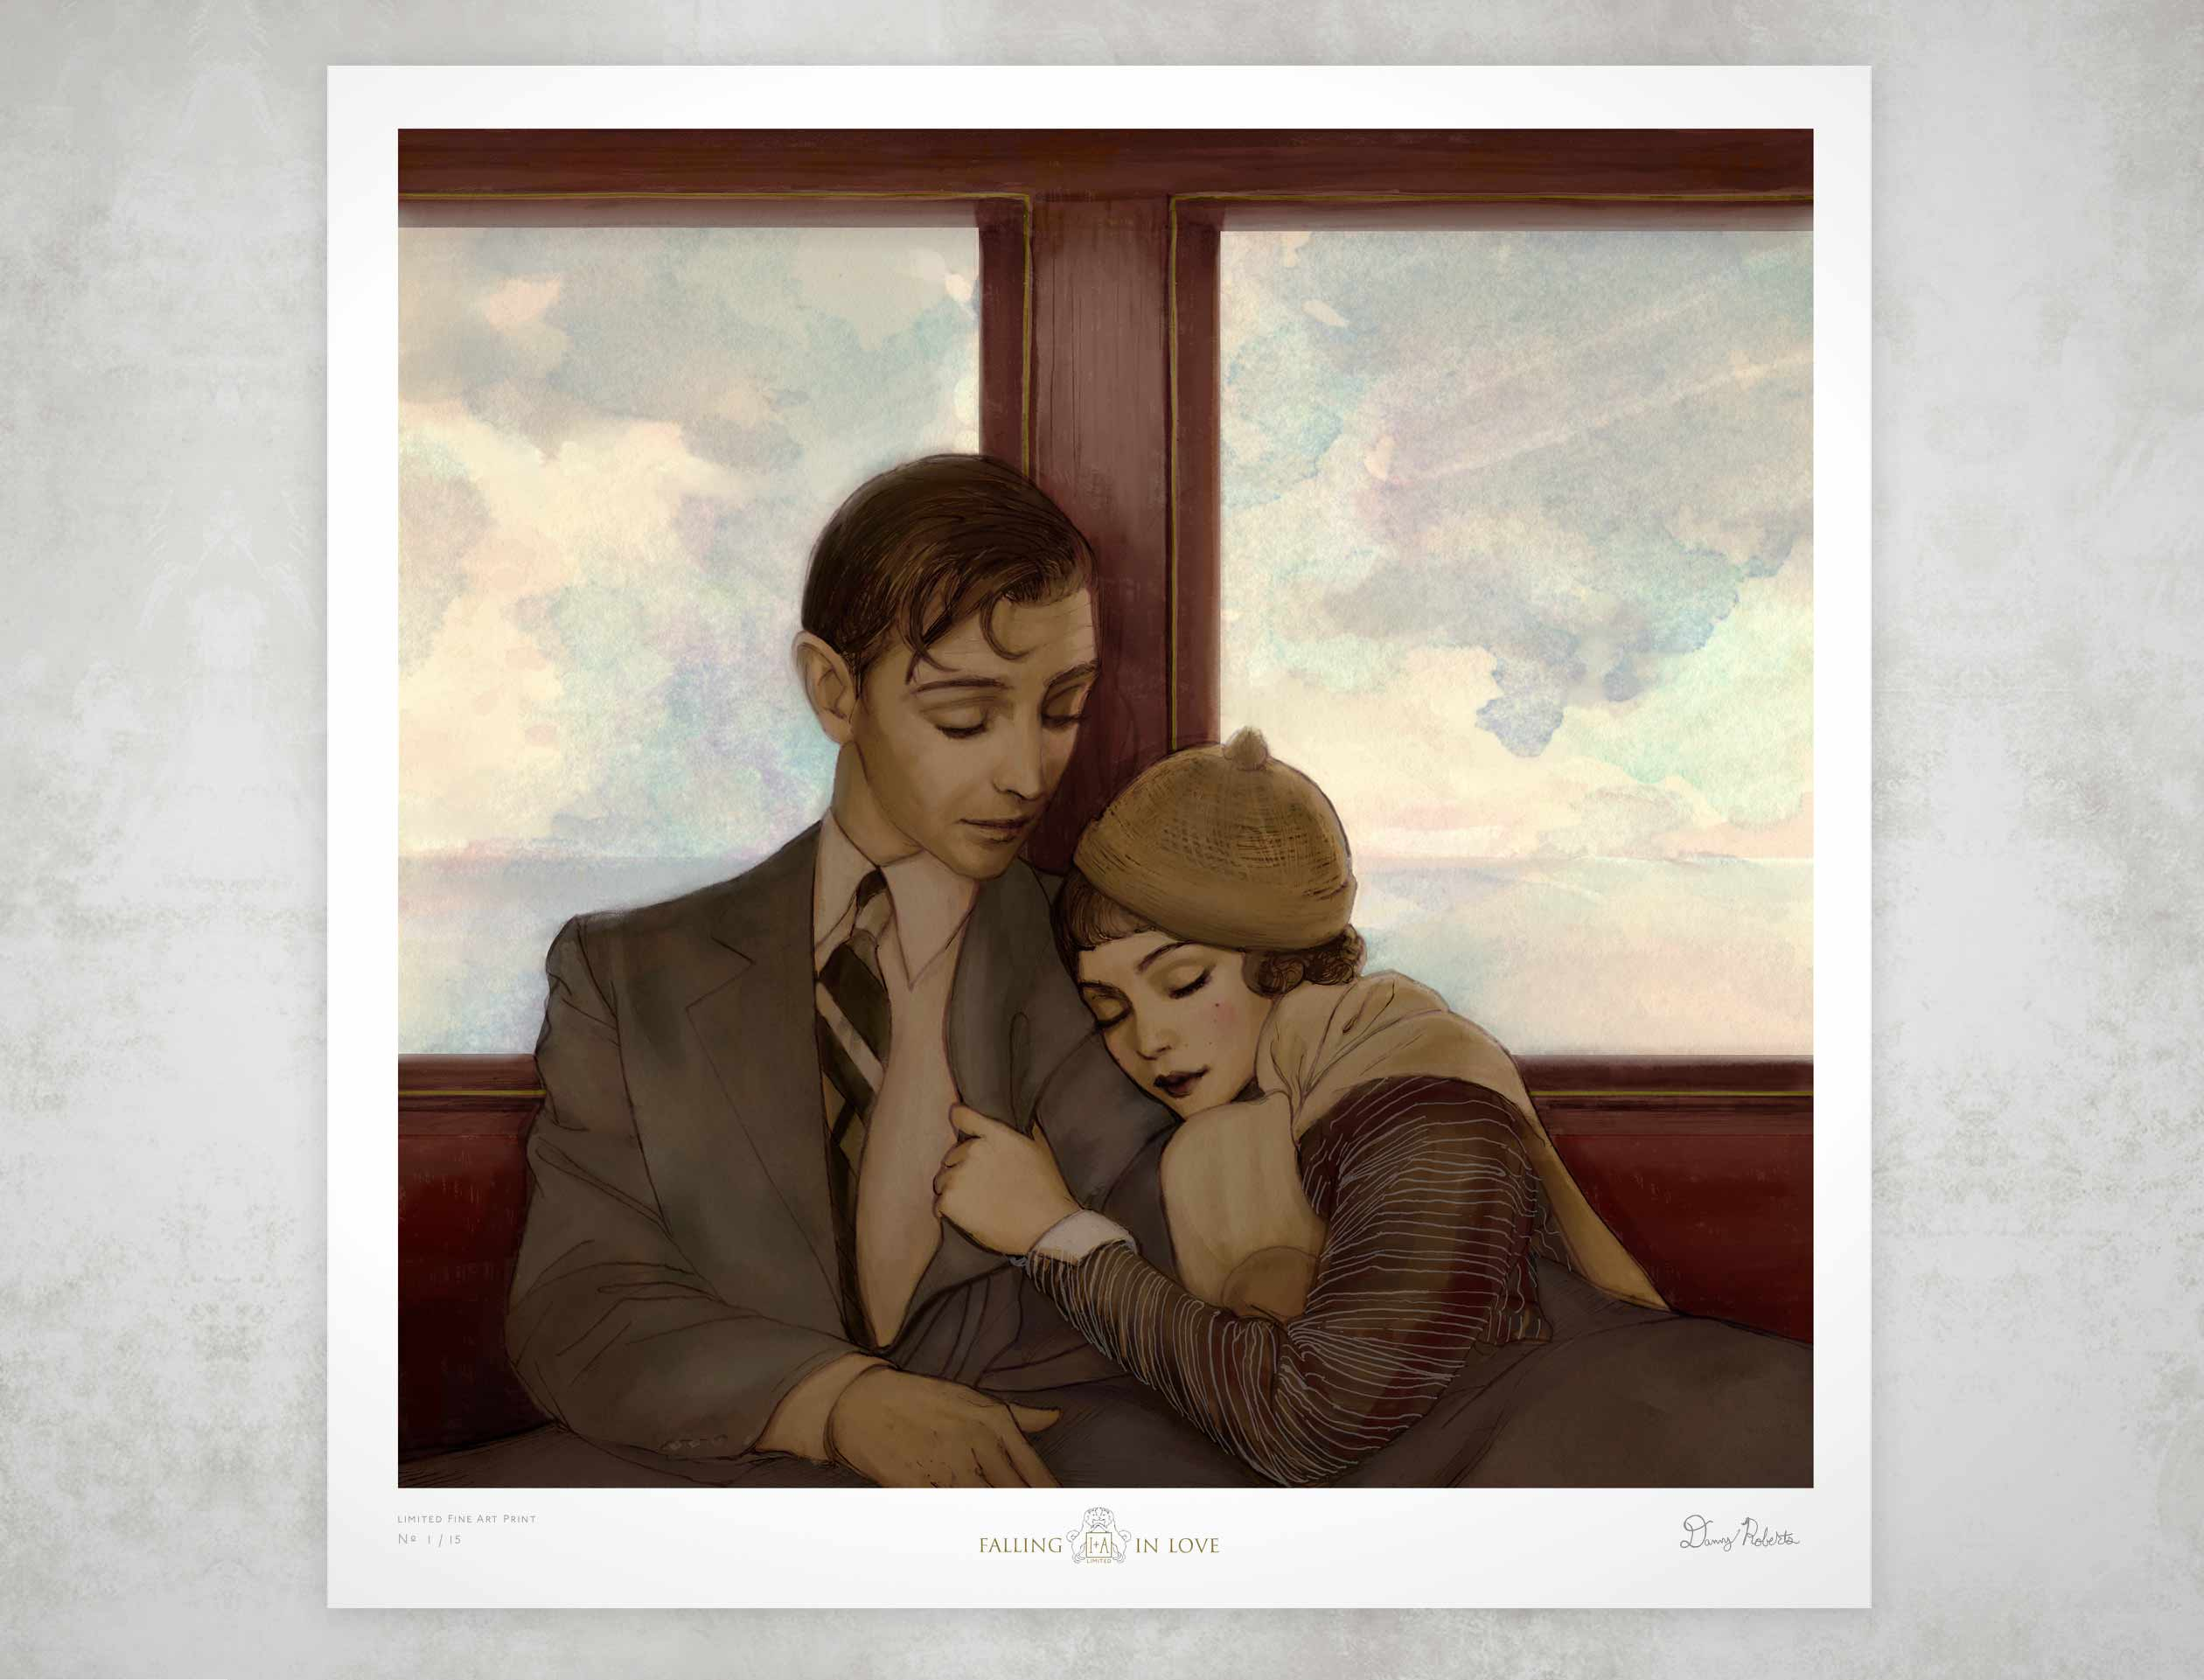 Valentines Falling in Love it Limited edition 15 by 15 fine art print by Artist Danny Roberts .